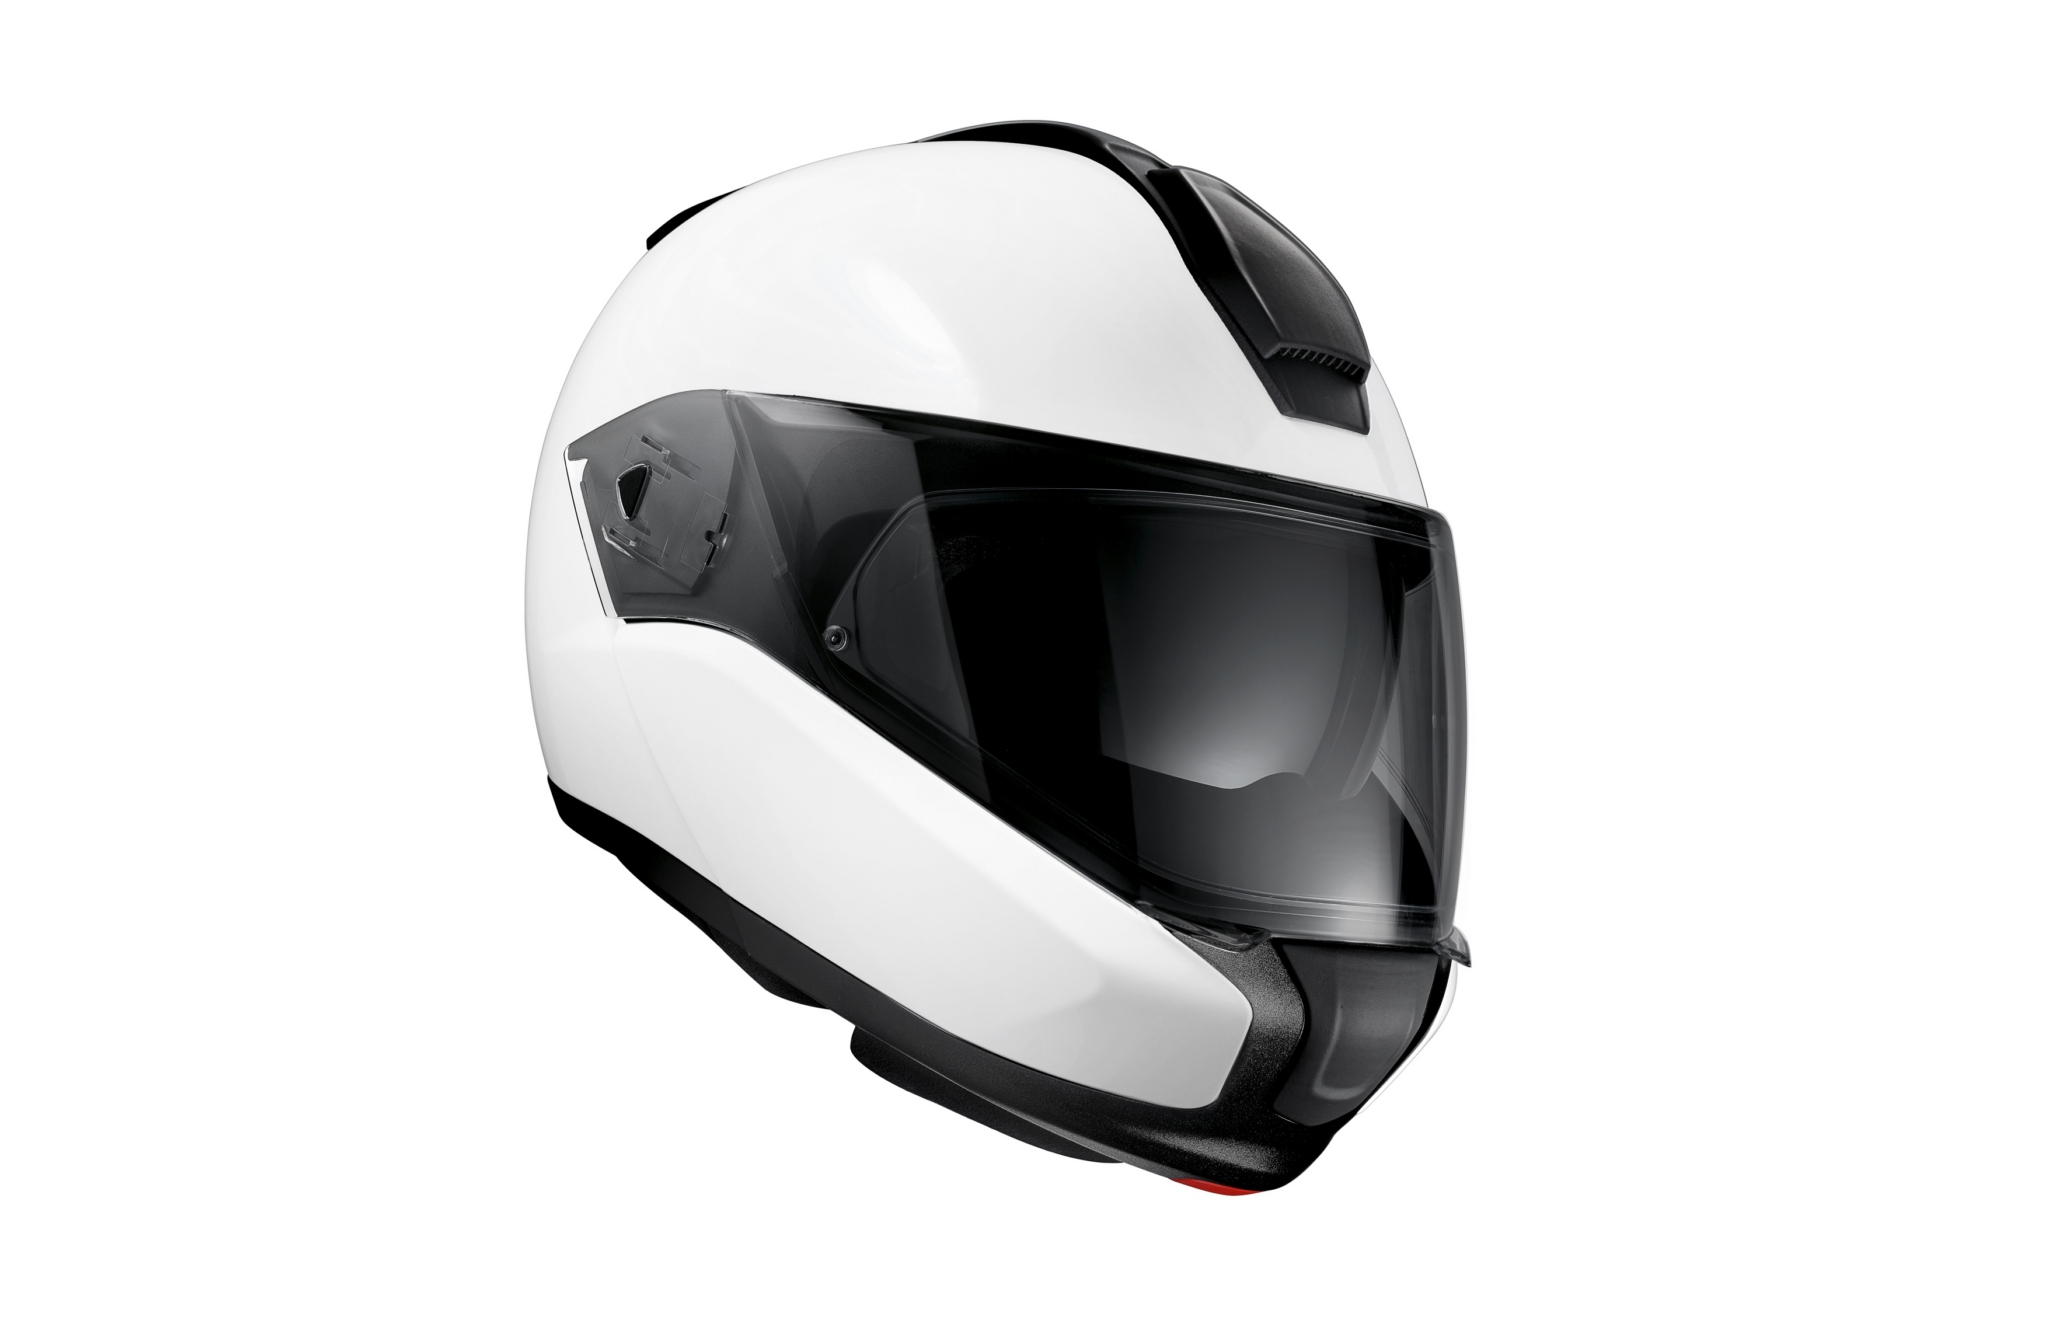 bmw announces system 6 evo helmet autoevolution. Black Bedroom Furniture Sets. Home Design Ideas